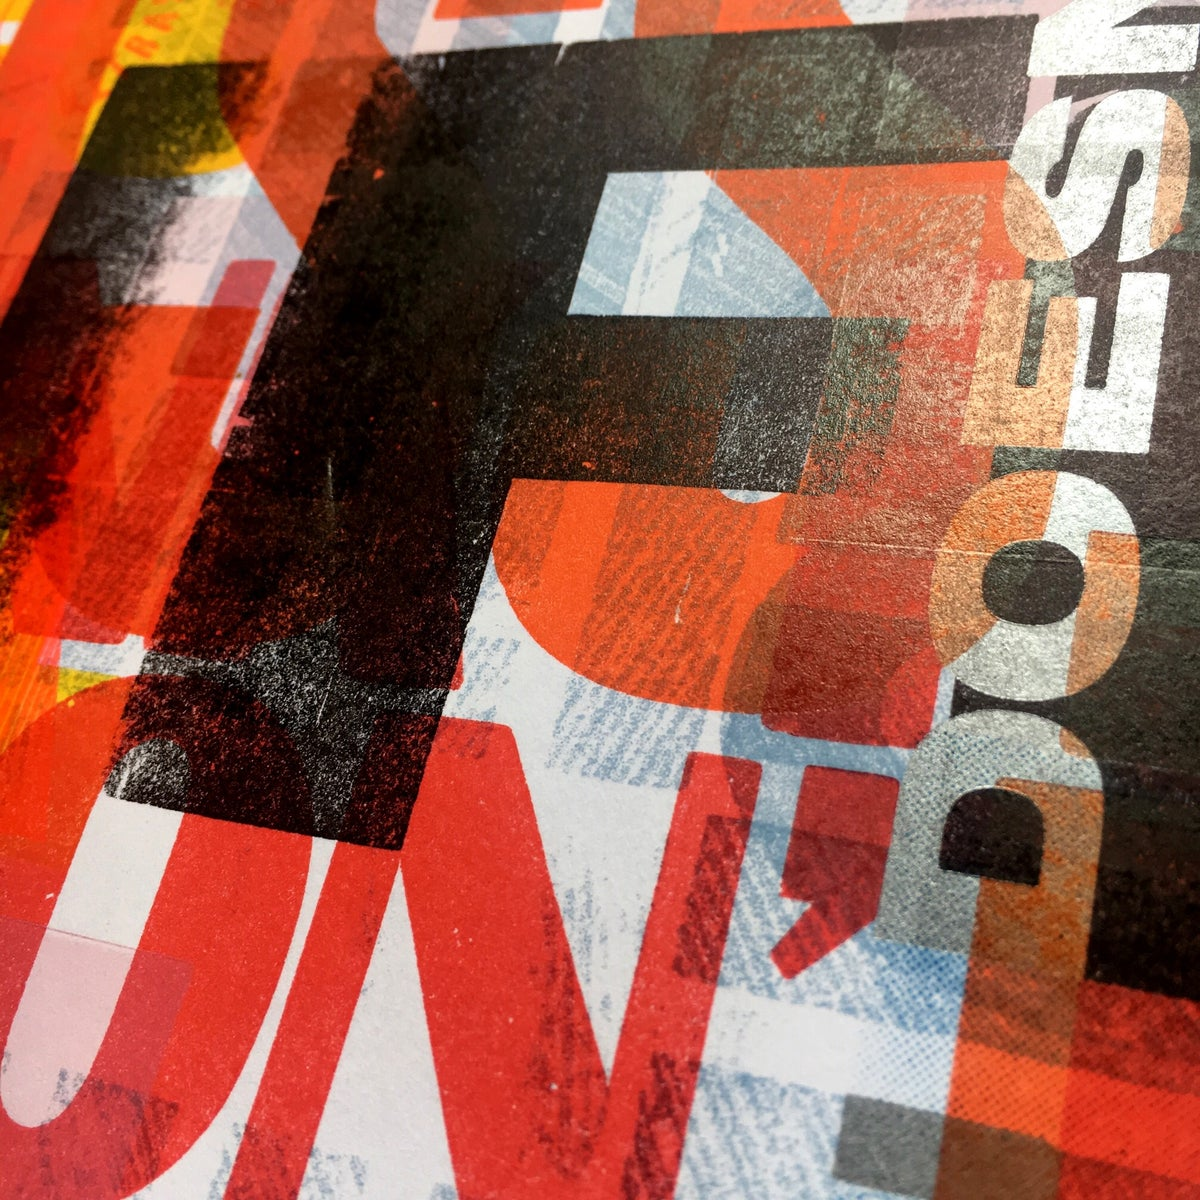 Image of One-off Typo Poster #2-019